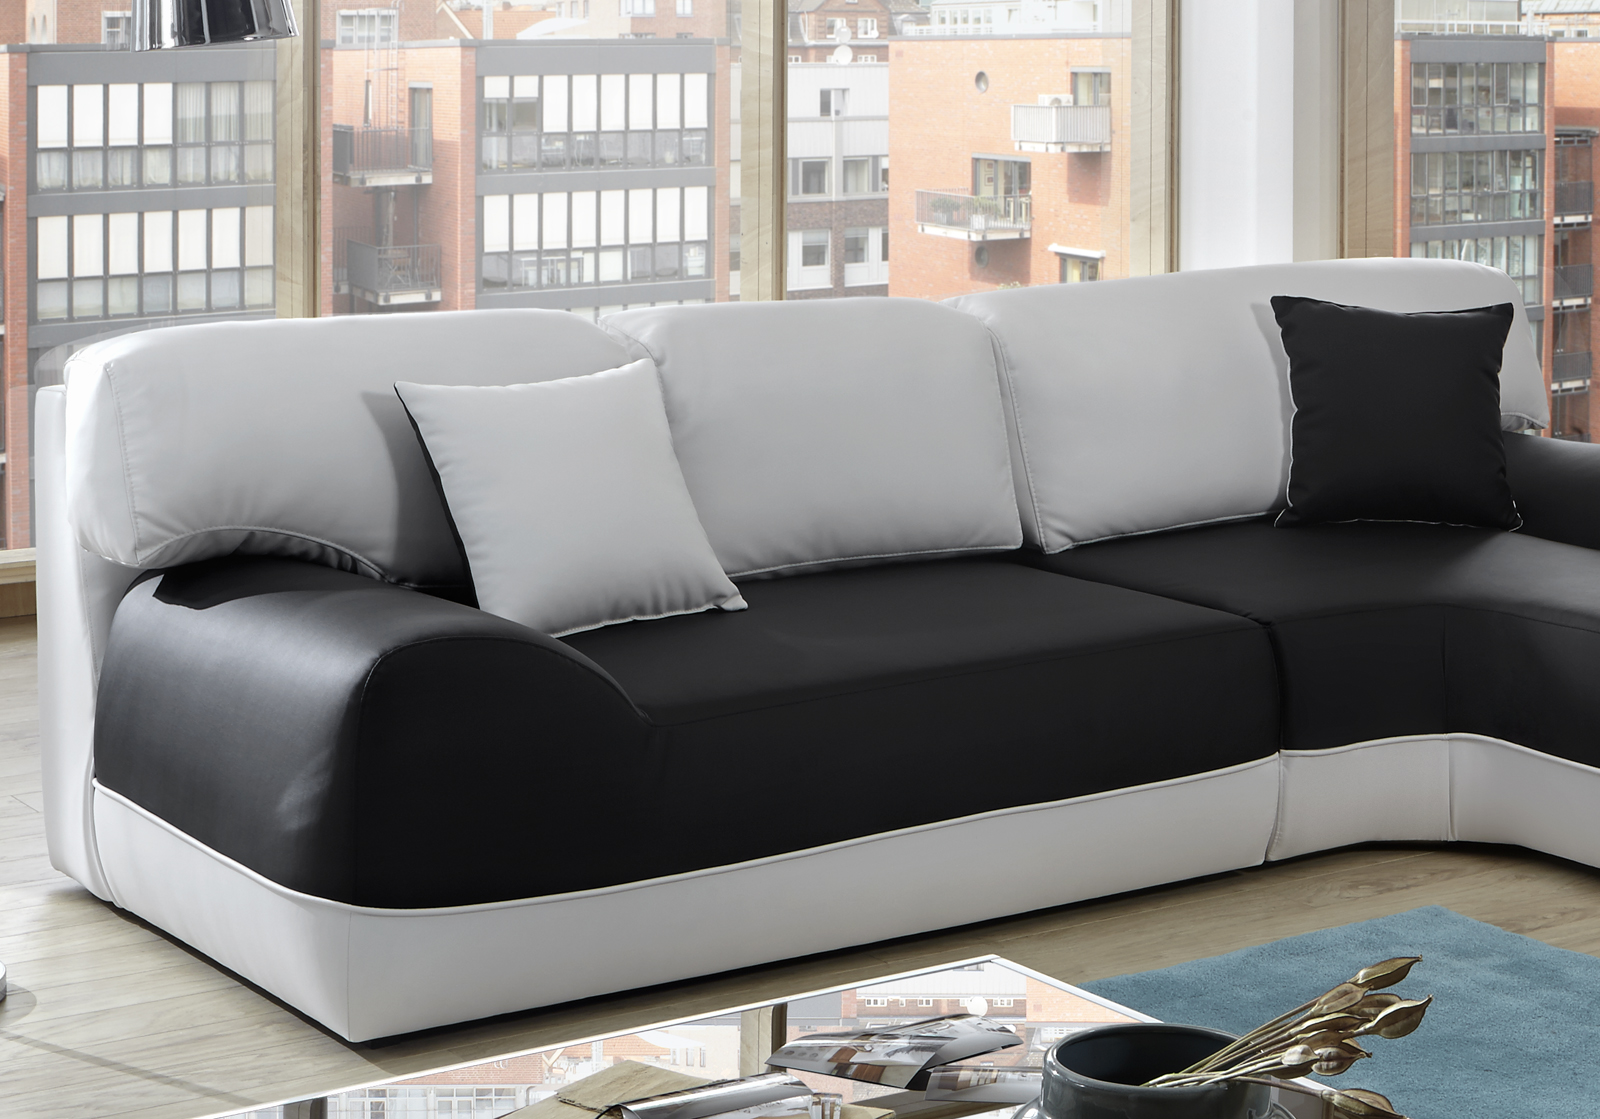 sam ecksofa schwarz wei couch impulso 260 x 220 cm. Black Bedroom Furniture Sets. Home Design Ideas